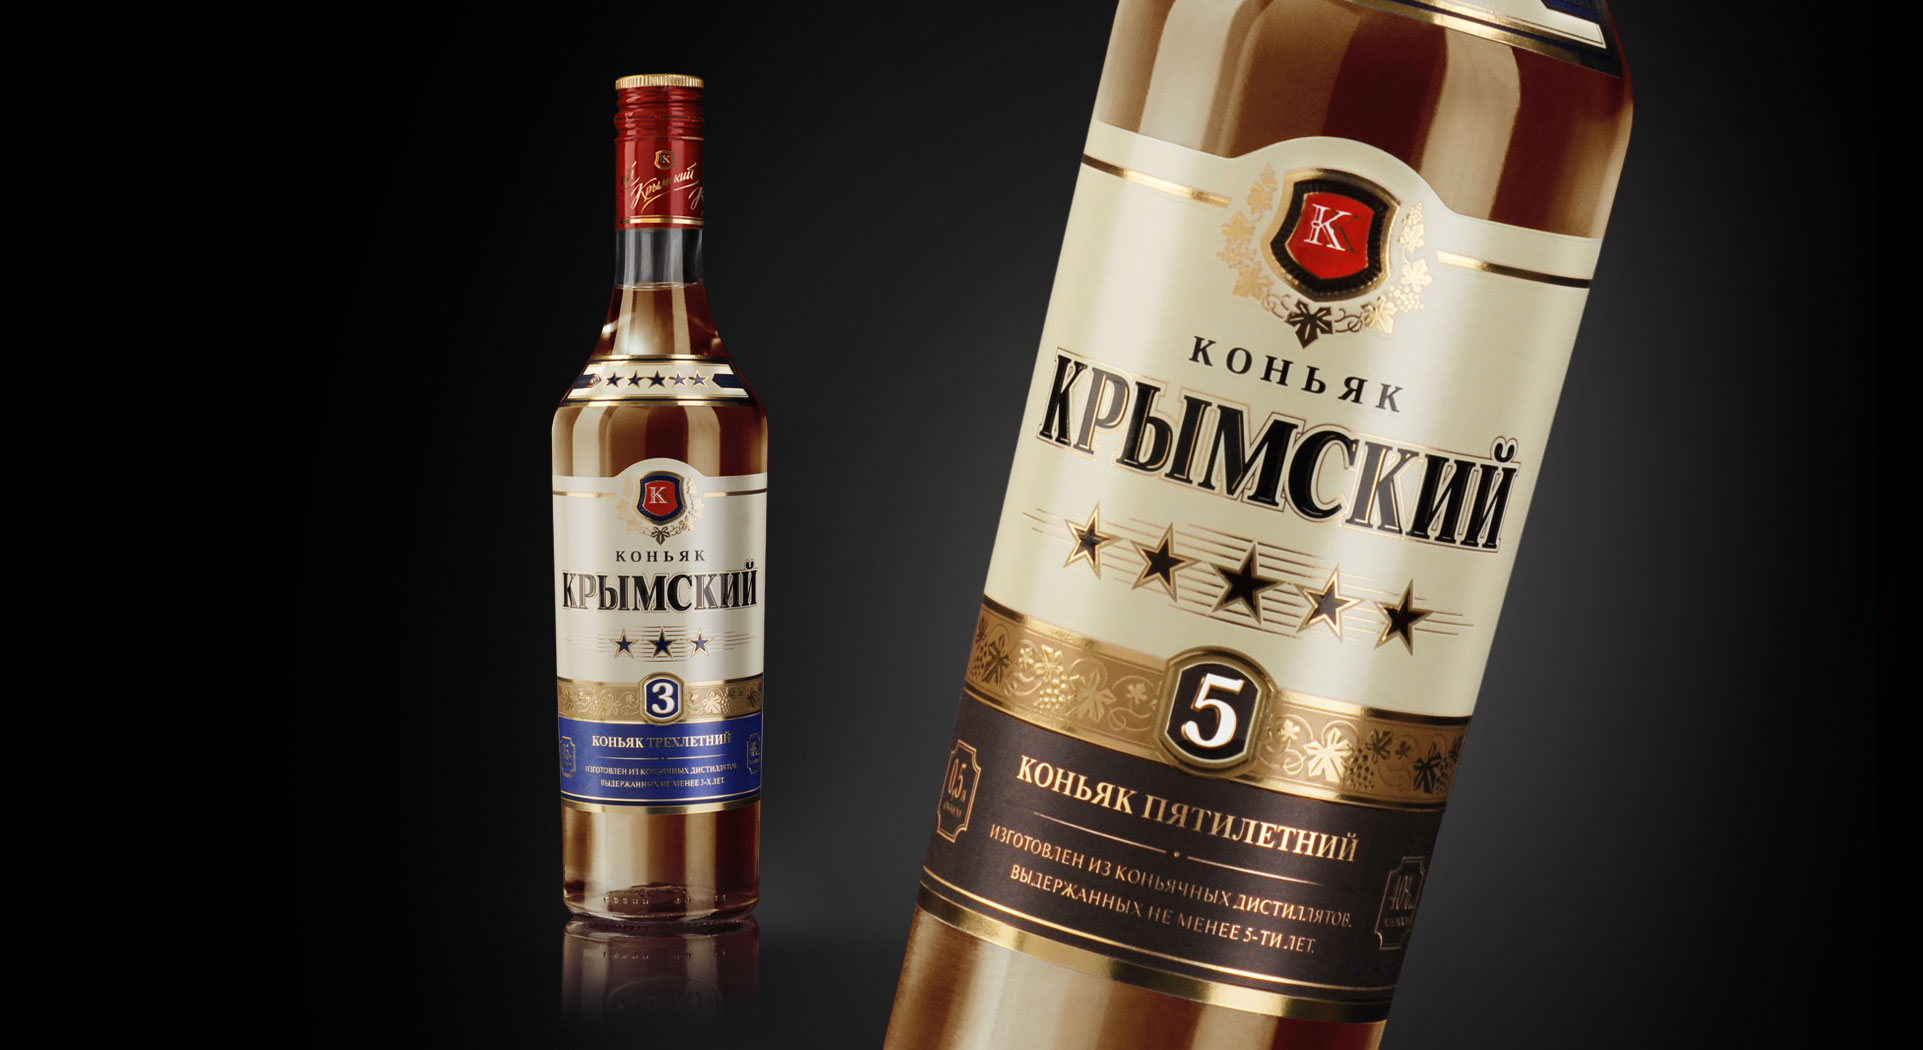 KRYMSKIY cognac design. Label design.